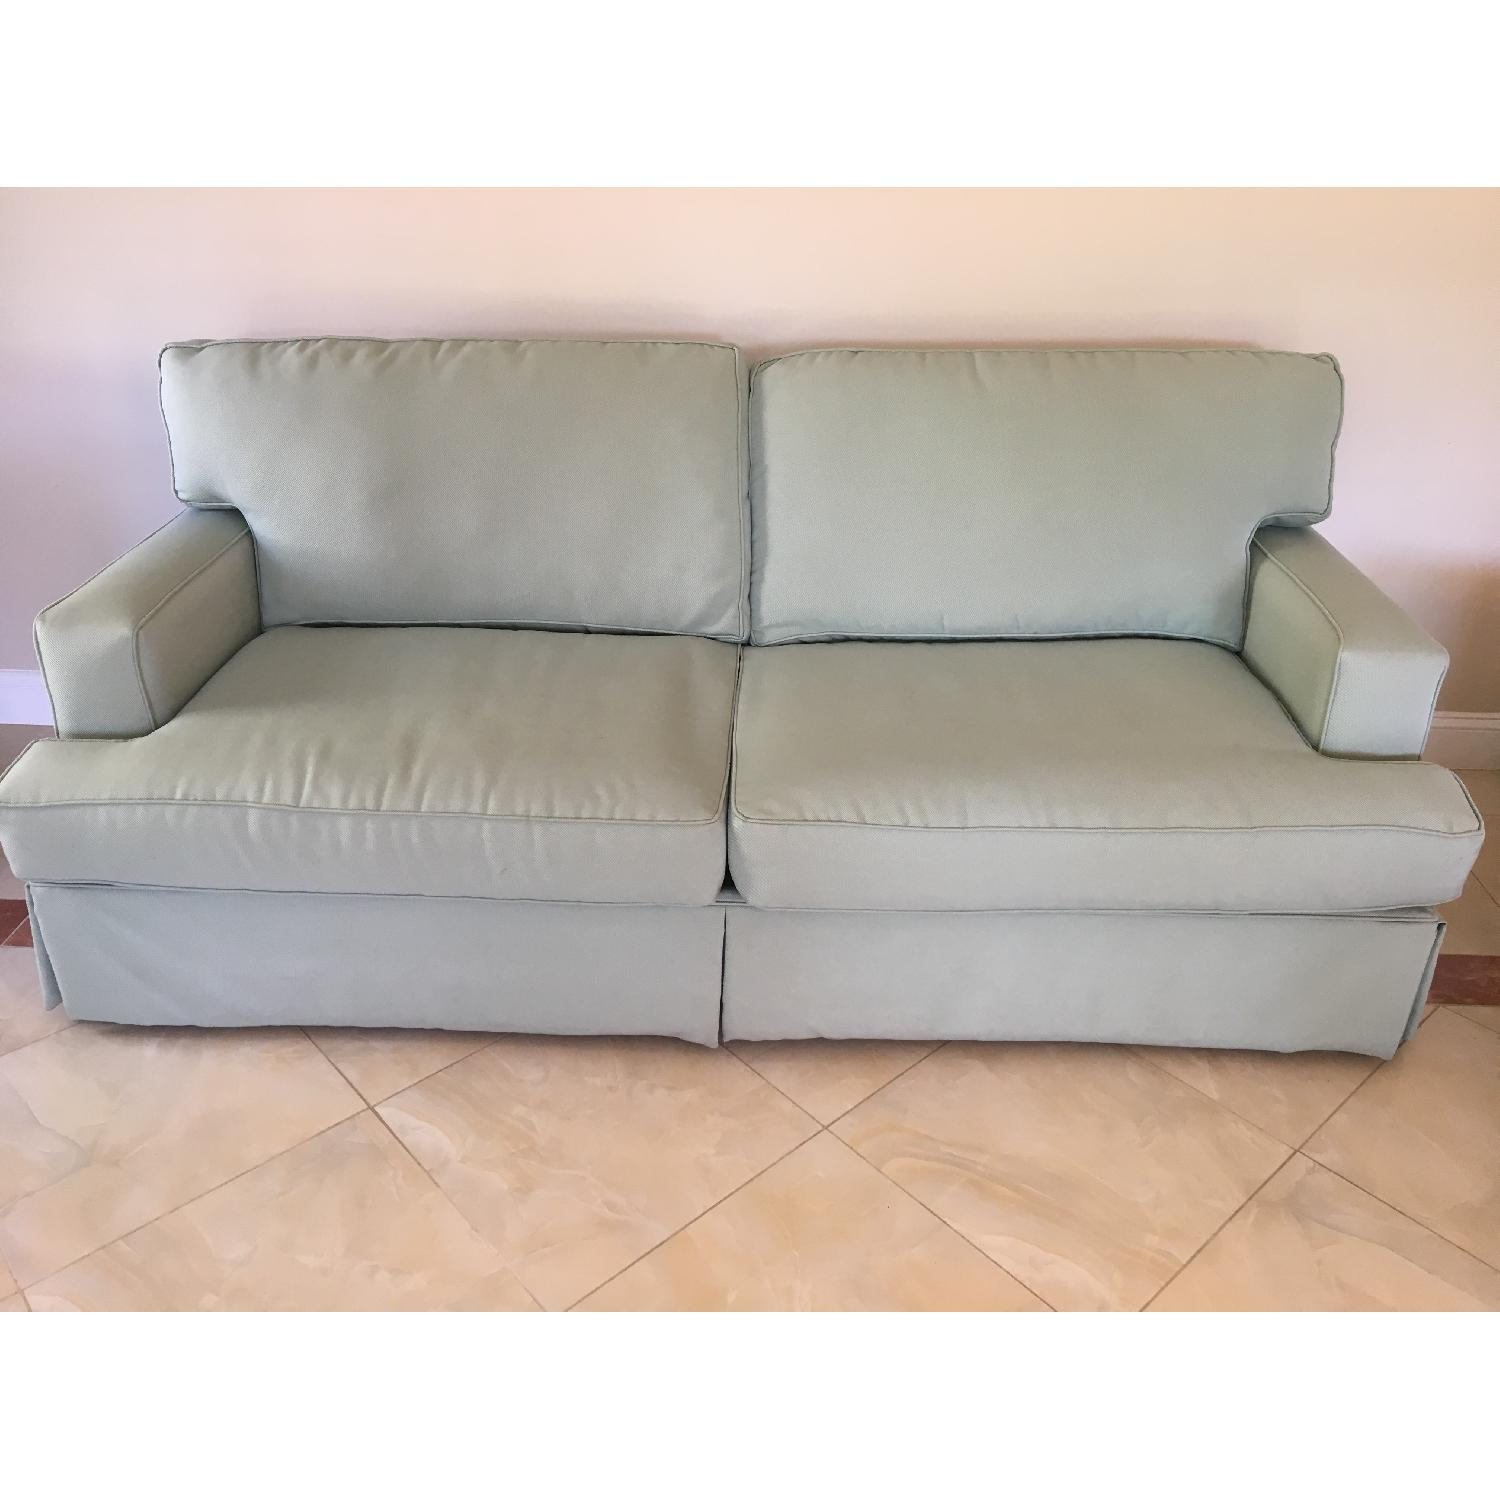 Raymour & Flanigan Sage Color Couch - image-1